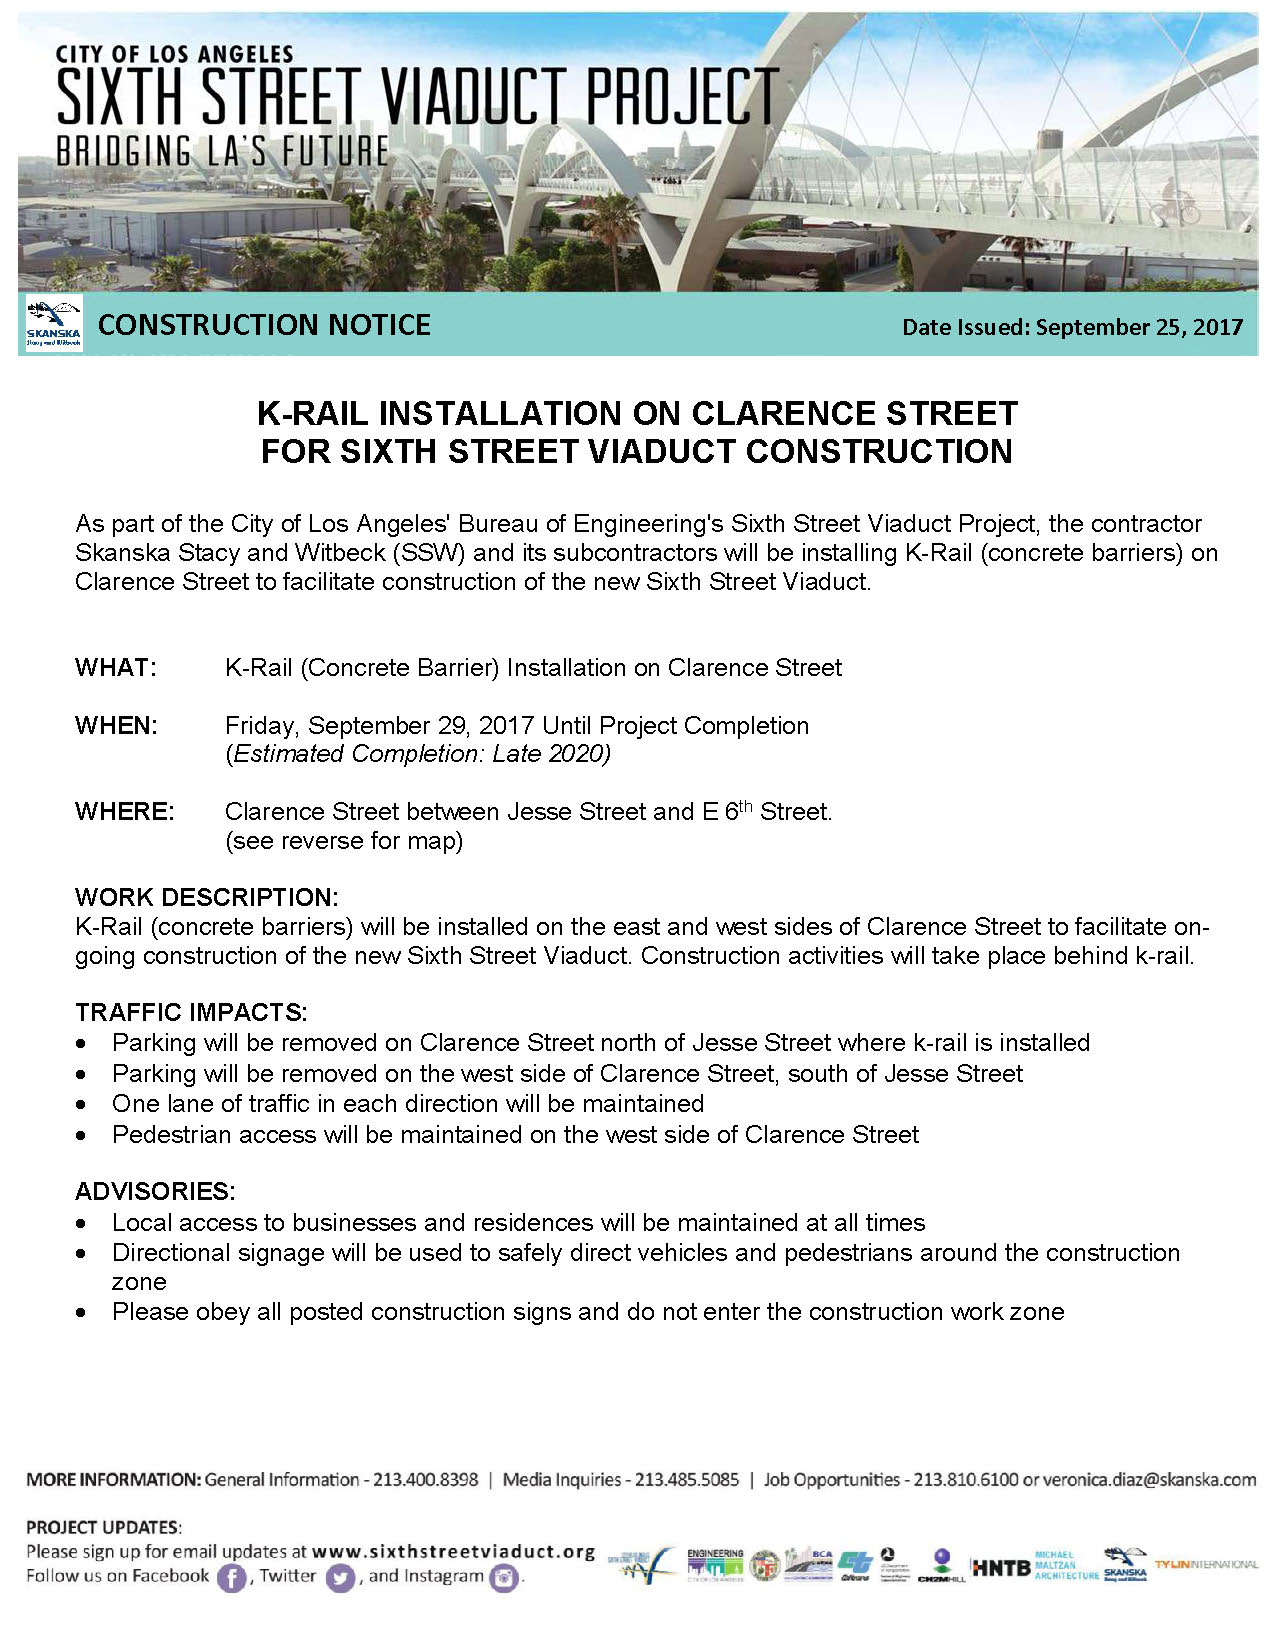 2017-09-25_SSW_Construction_Notice_-_Clarence_St._K-Rail_Installation_Page_1.jpg